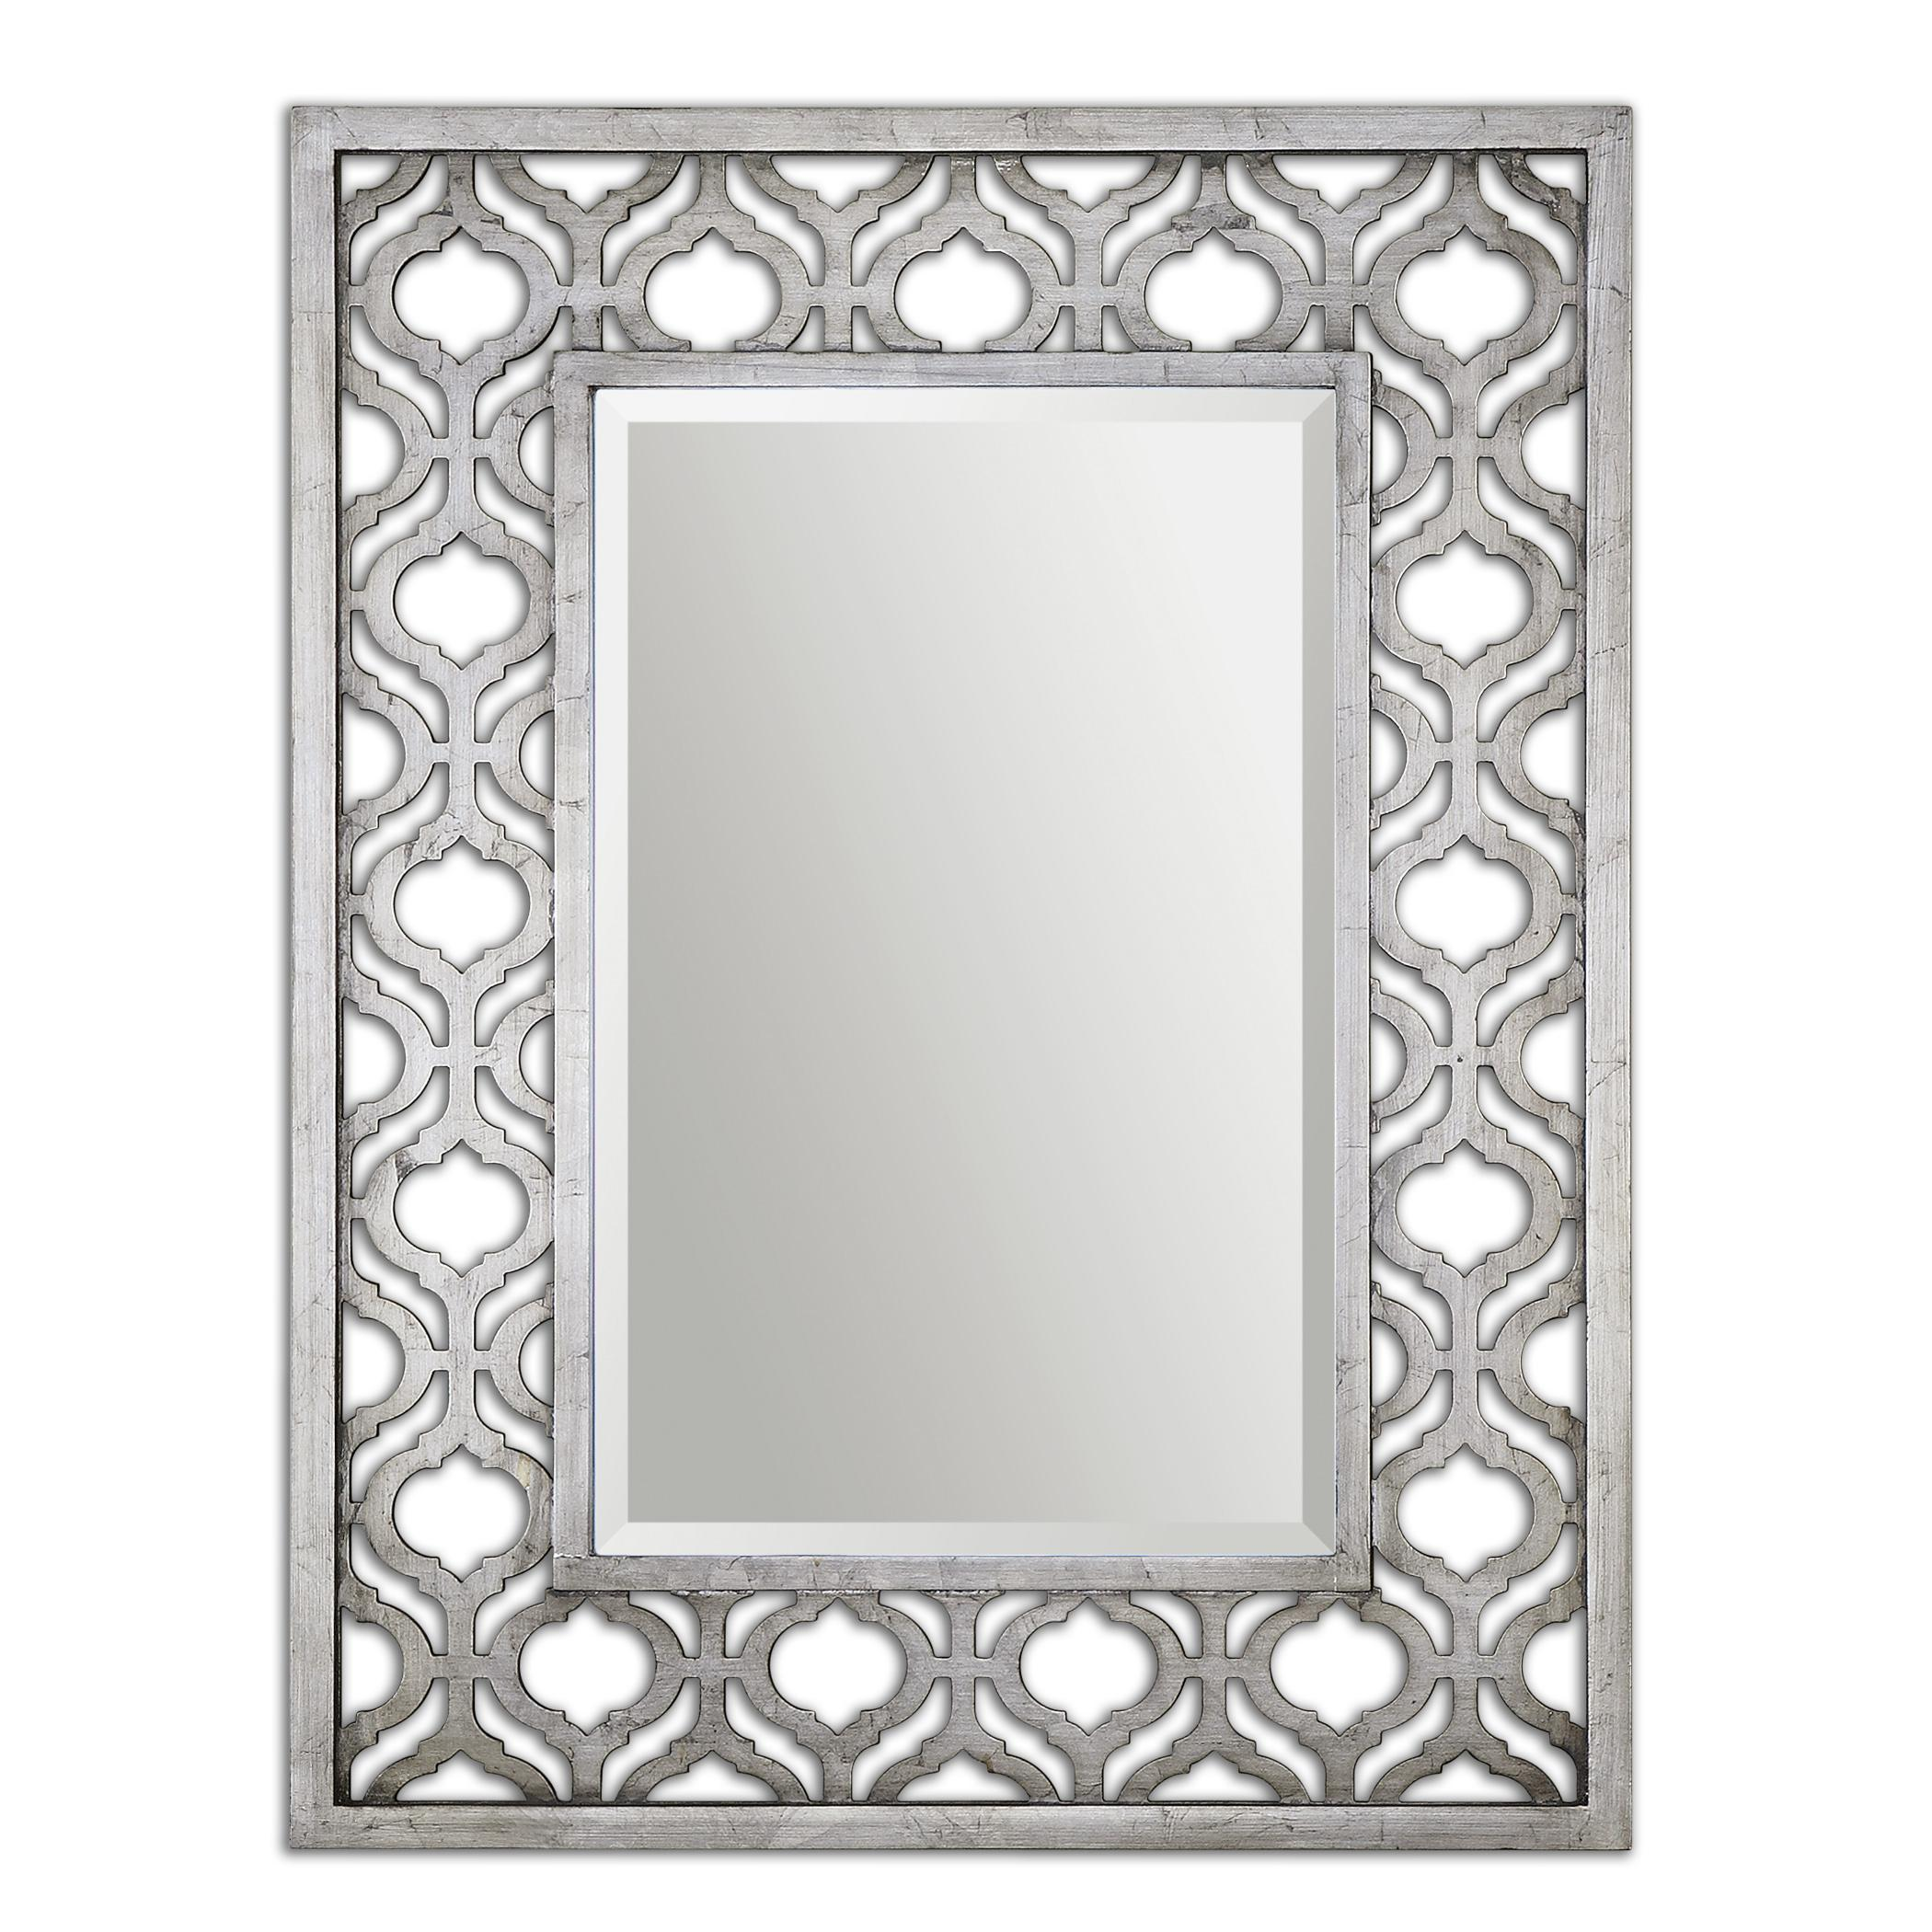 Uttermost Mirrors Sorbolo Silver Mirror - Item Number: 13863